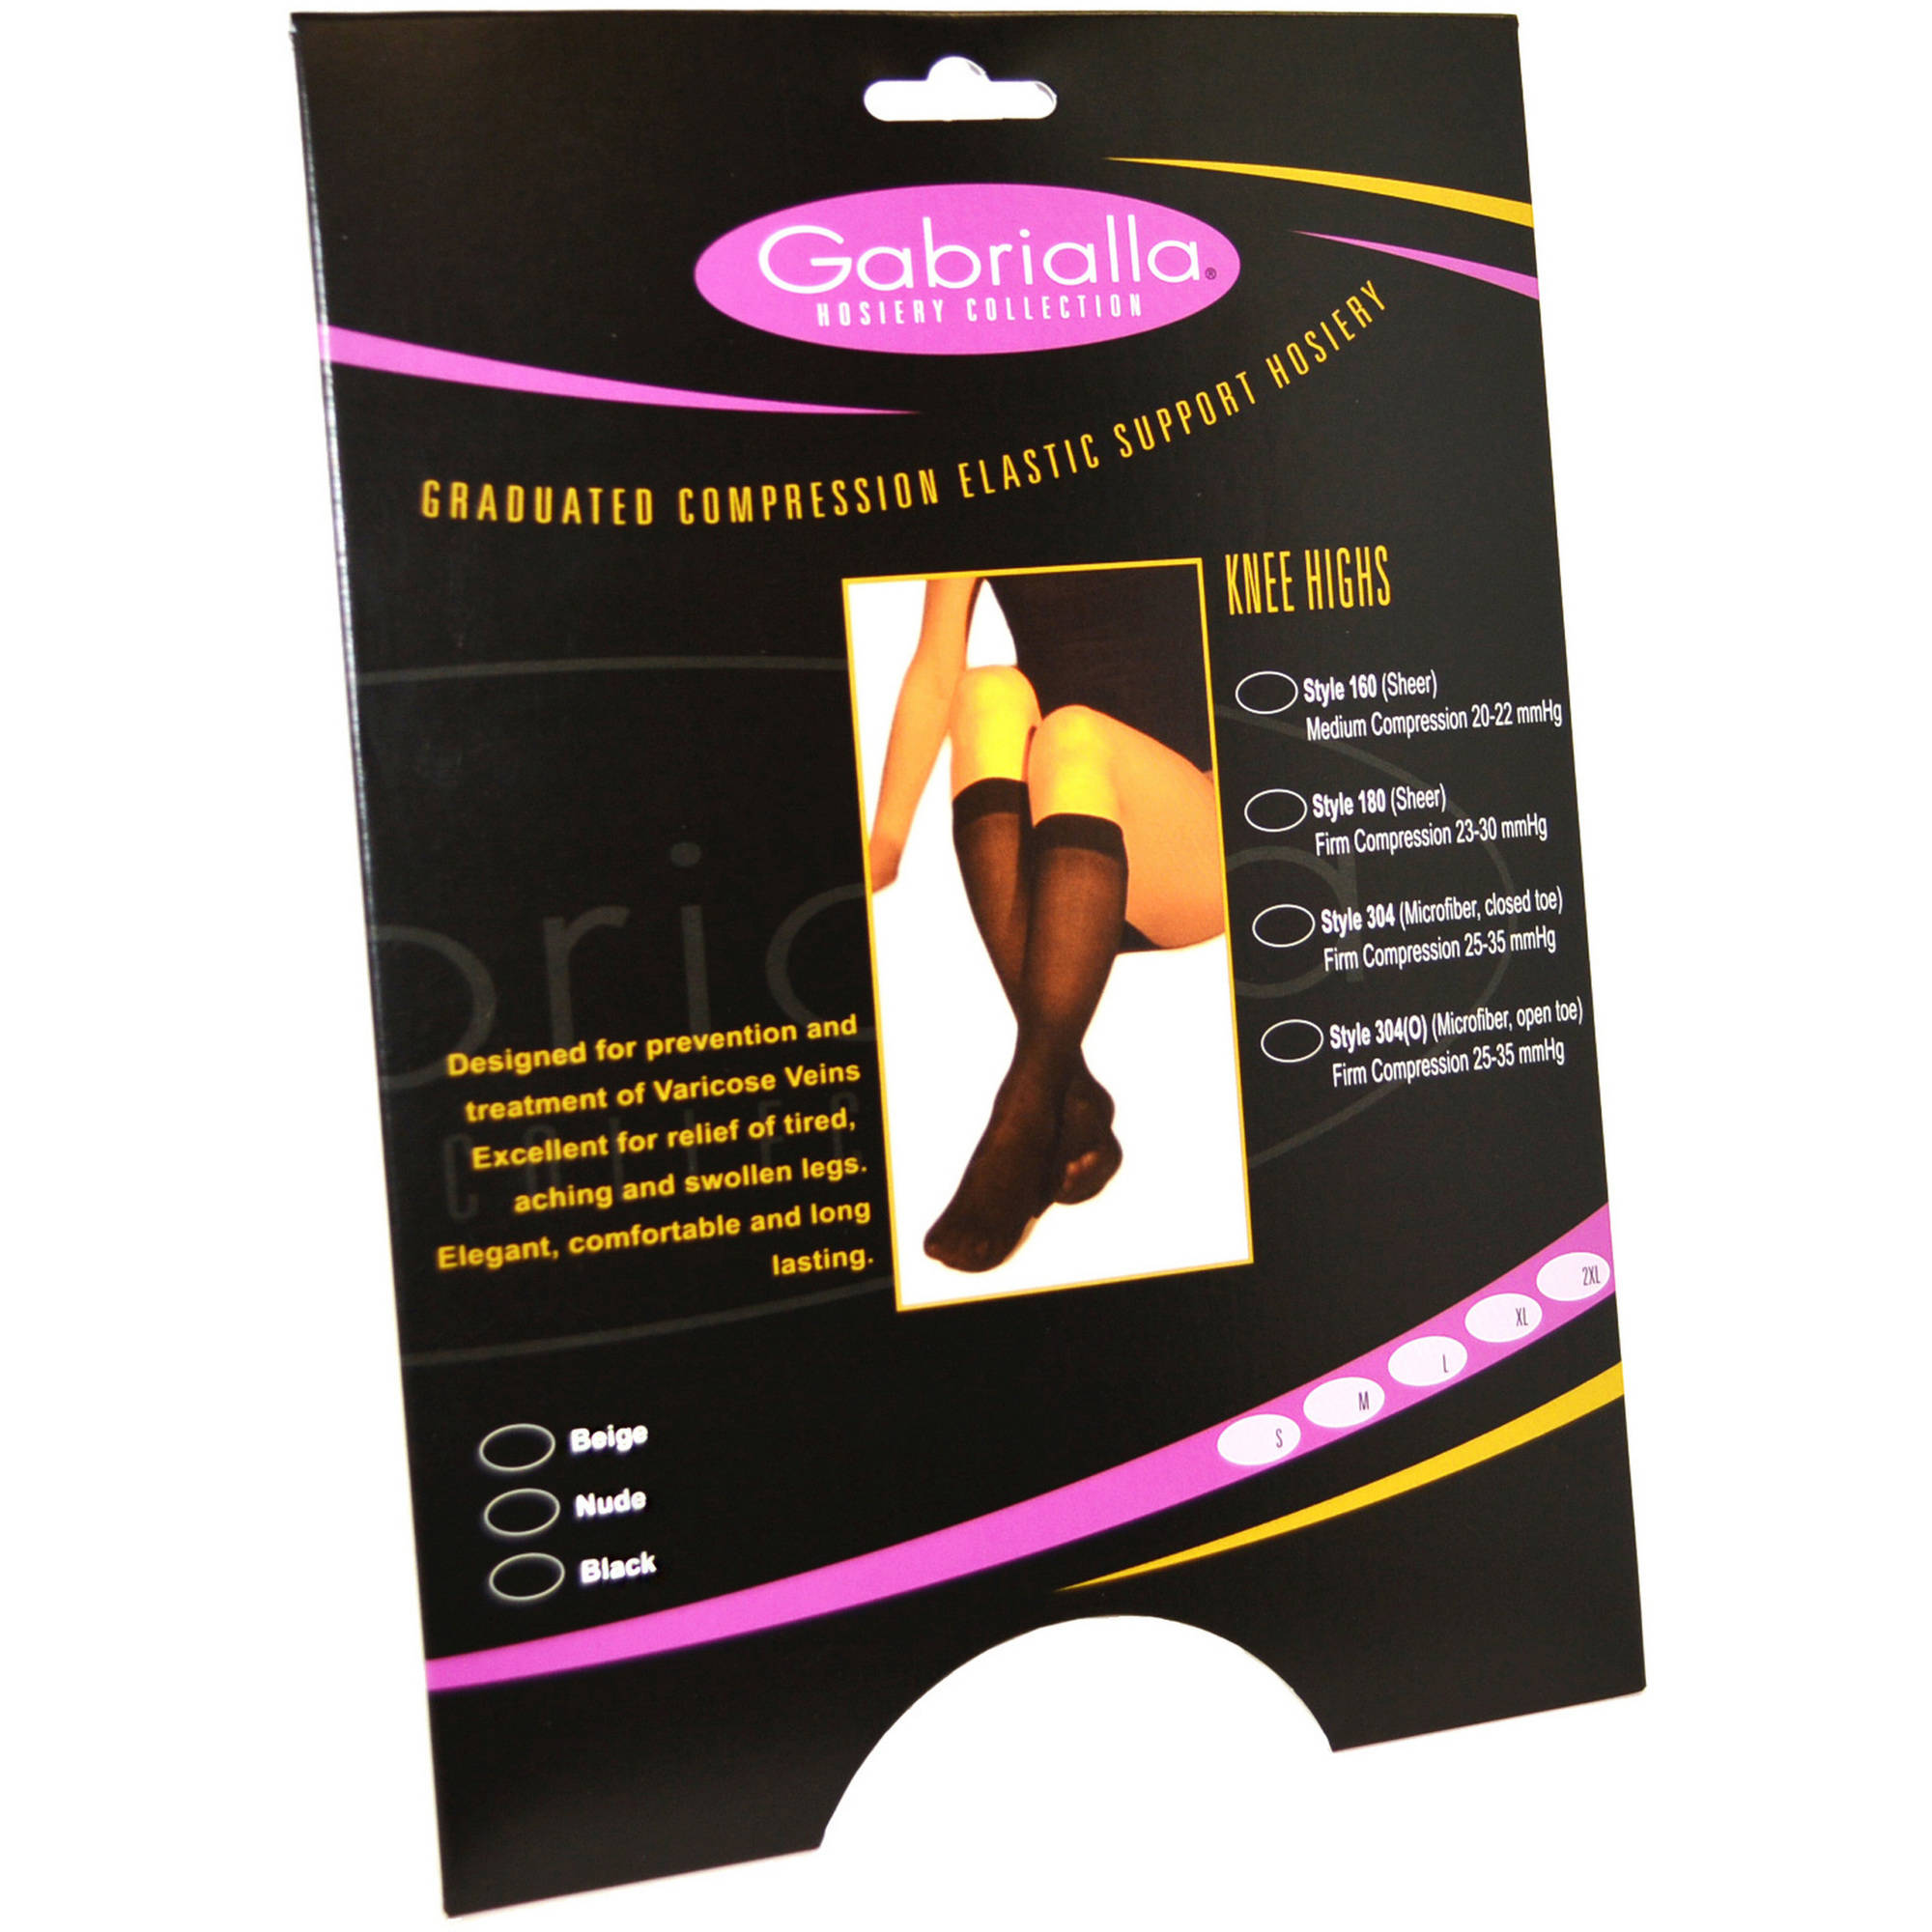 GABRIALLA Open Toe Knee Highs - Compression (25-35 mmHg): H-304(O)